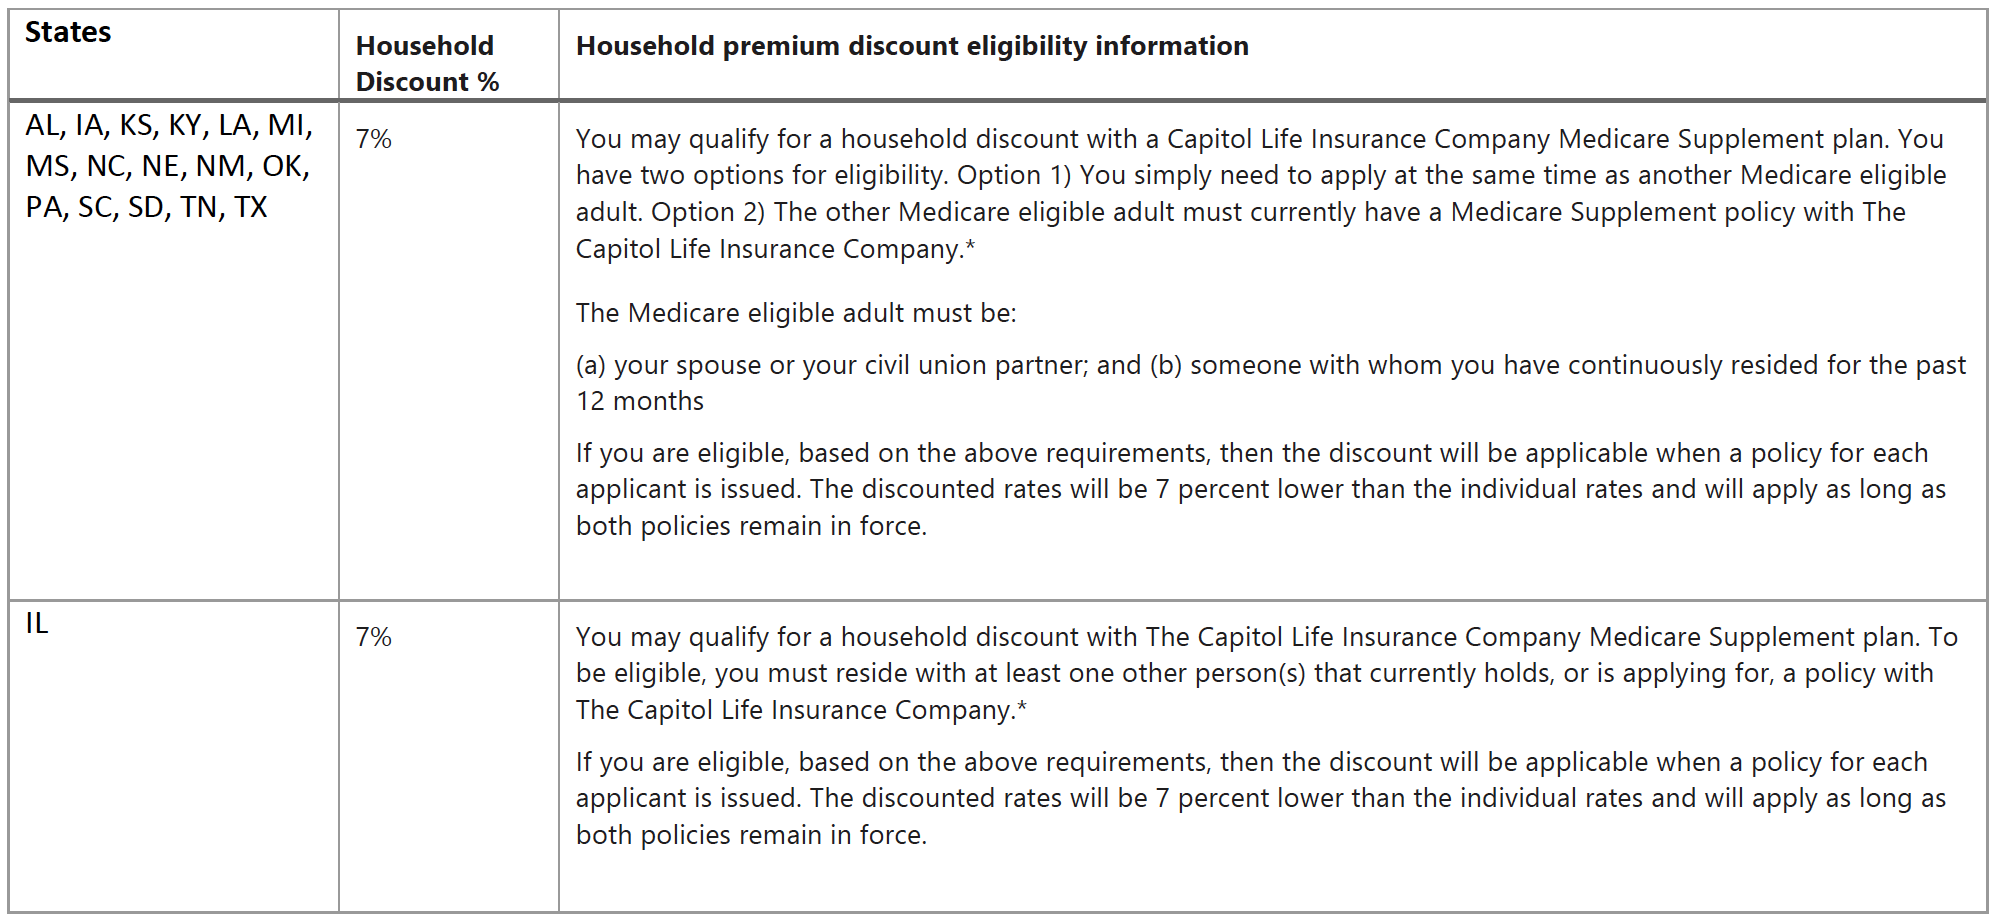 Capitol Life Medigap Household Discount